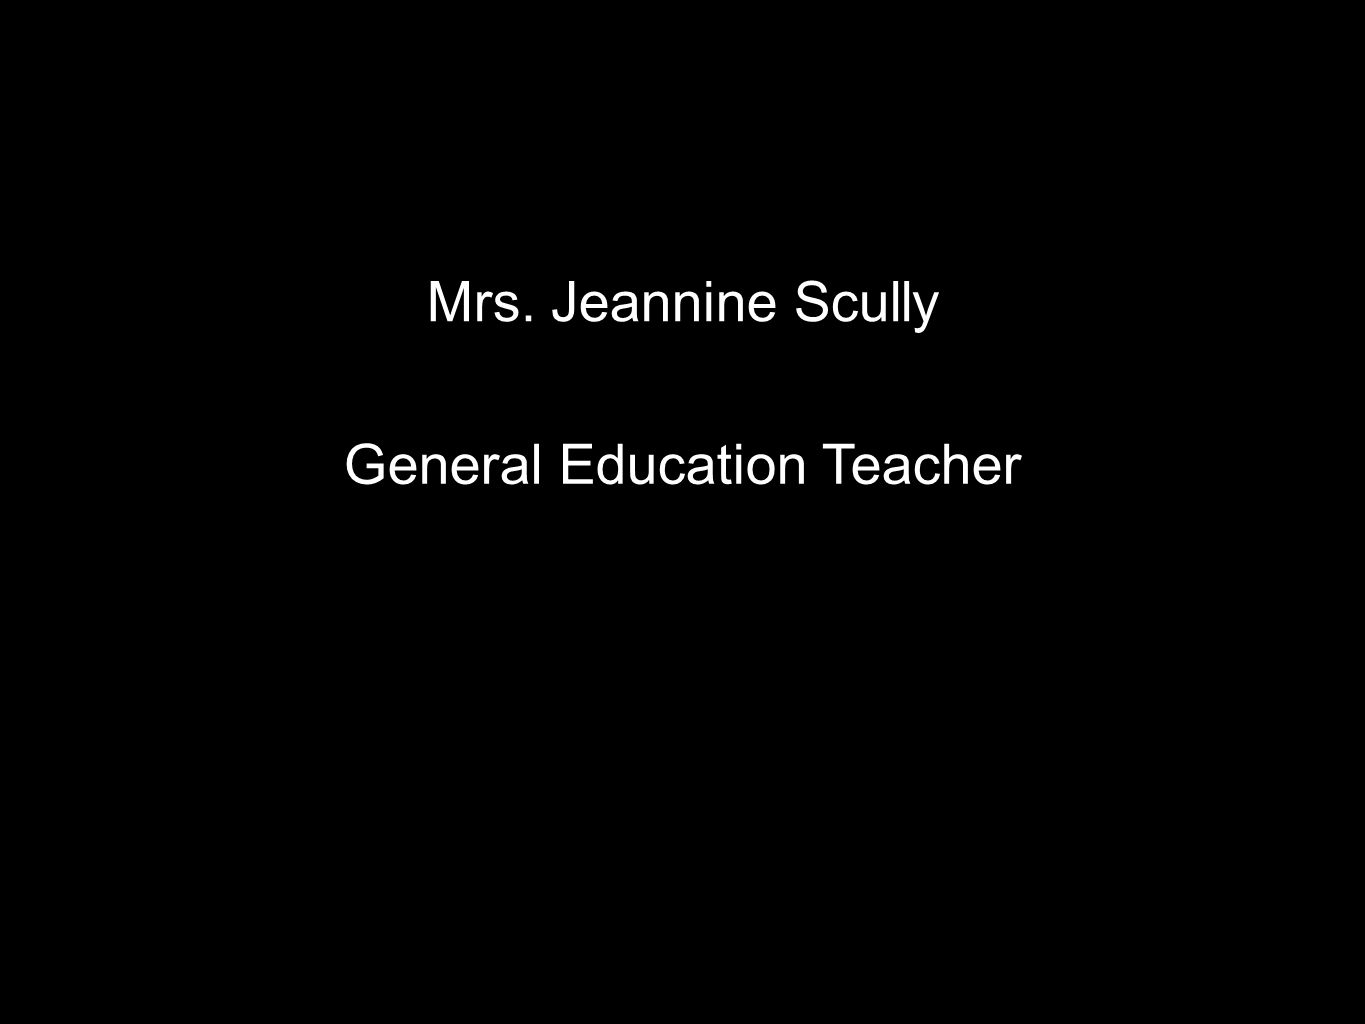 Mrs. Jeannine Scully General Education Teacher